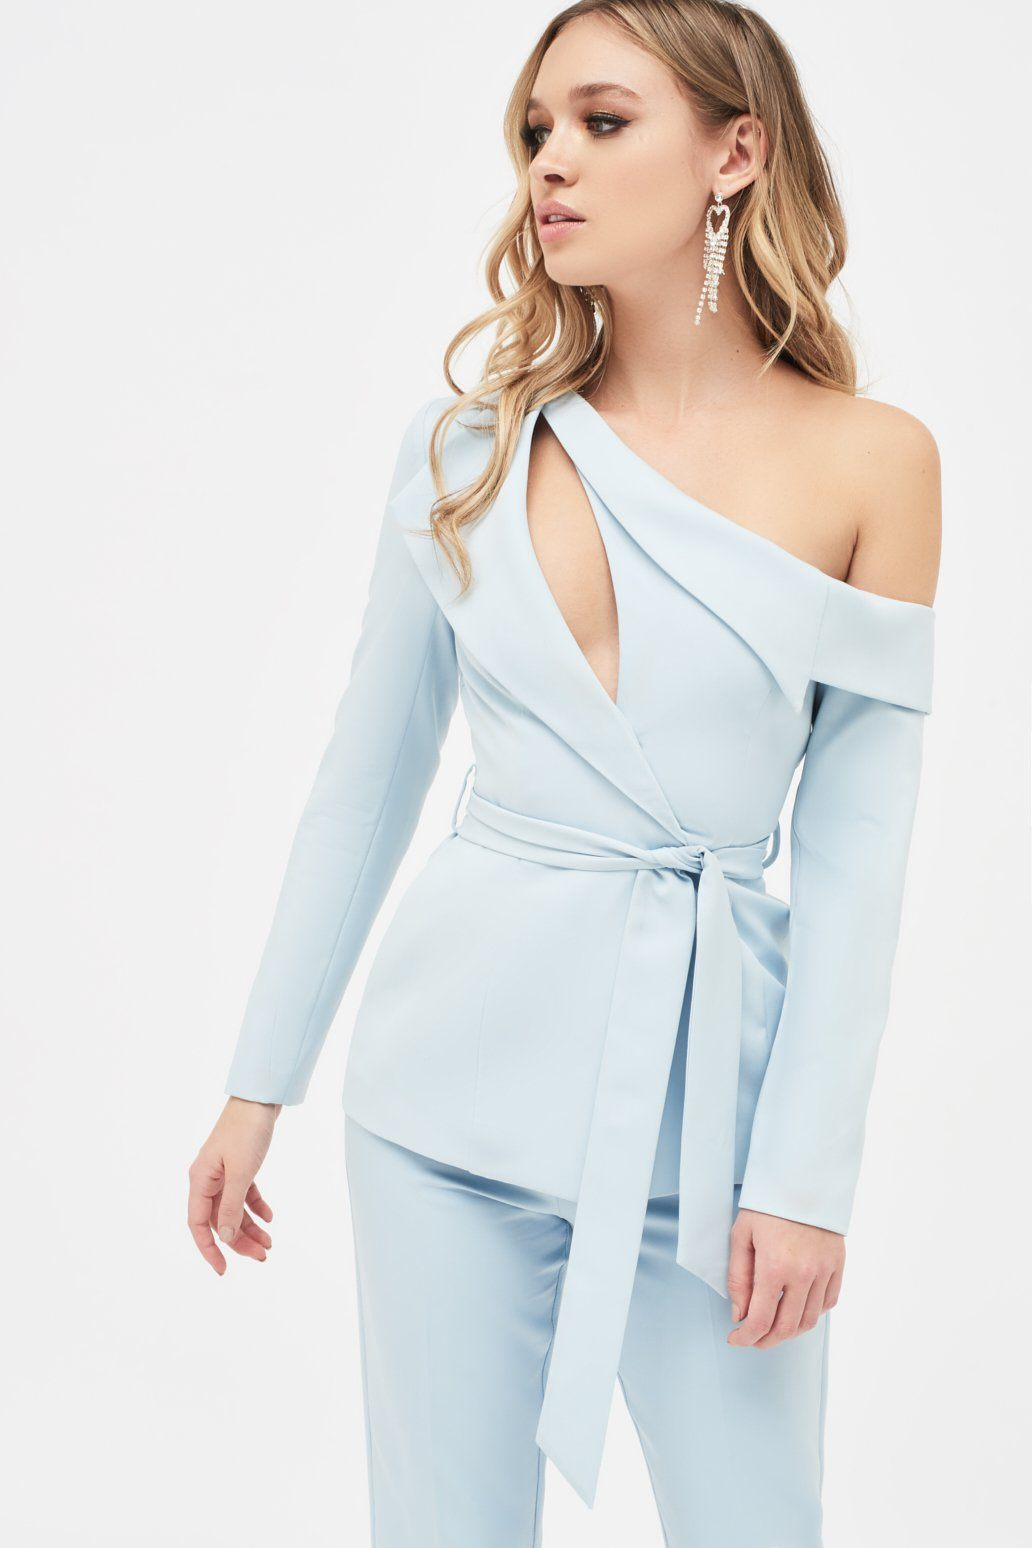 Cut Out One Shoulder Lapel Tailored Jacket in Dusty Blue